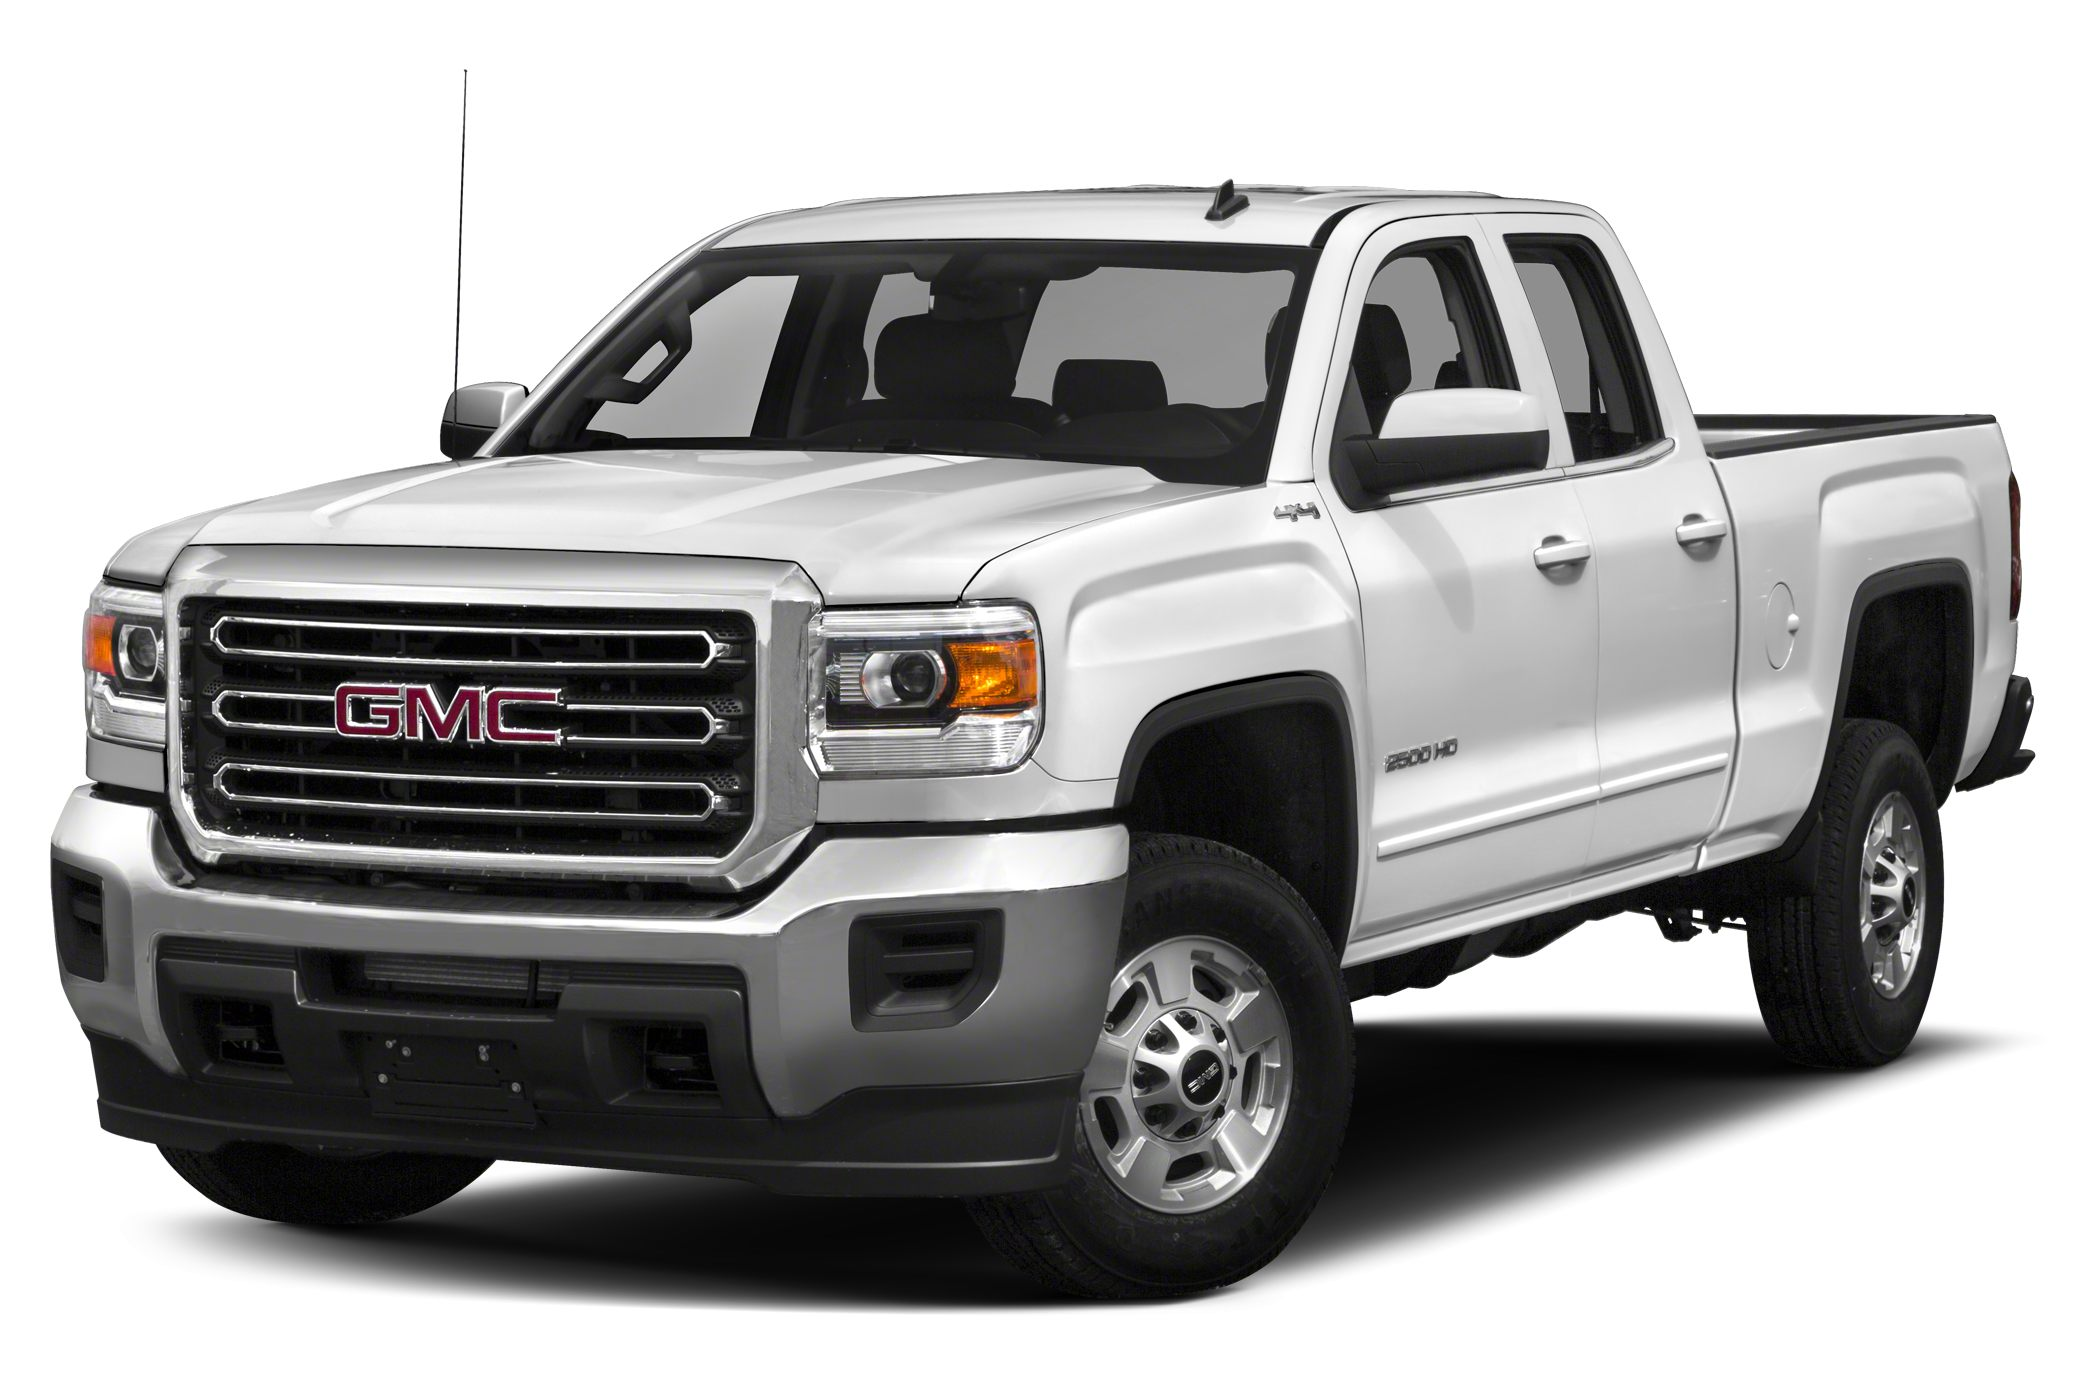 2015 GMC Sierra 2500 Base Regular Cab Pickup for sale in Oneonta for $39,530 with 10 miles.